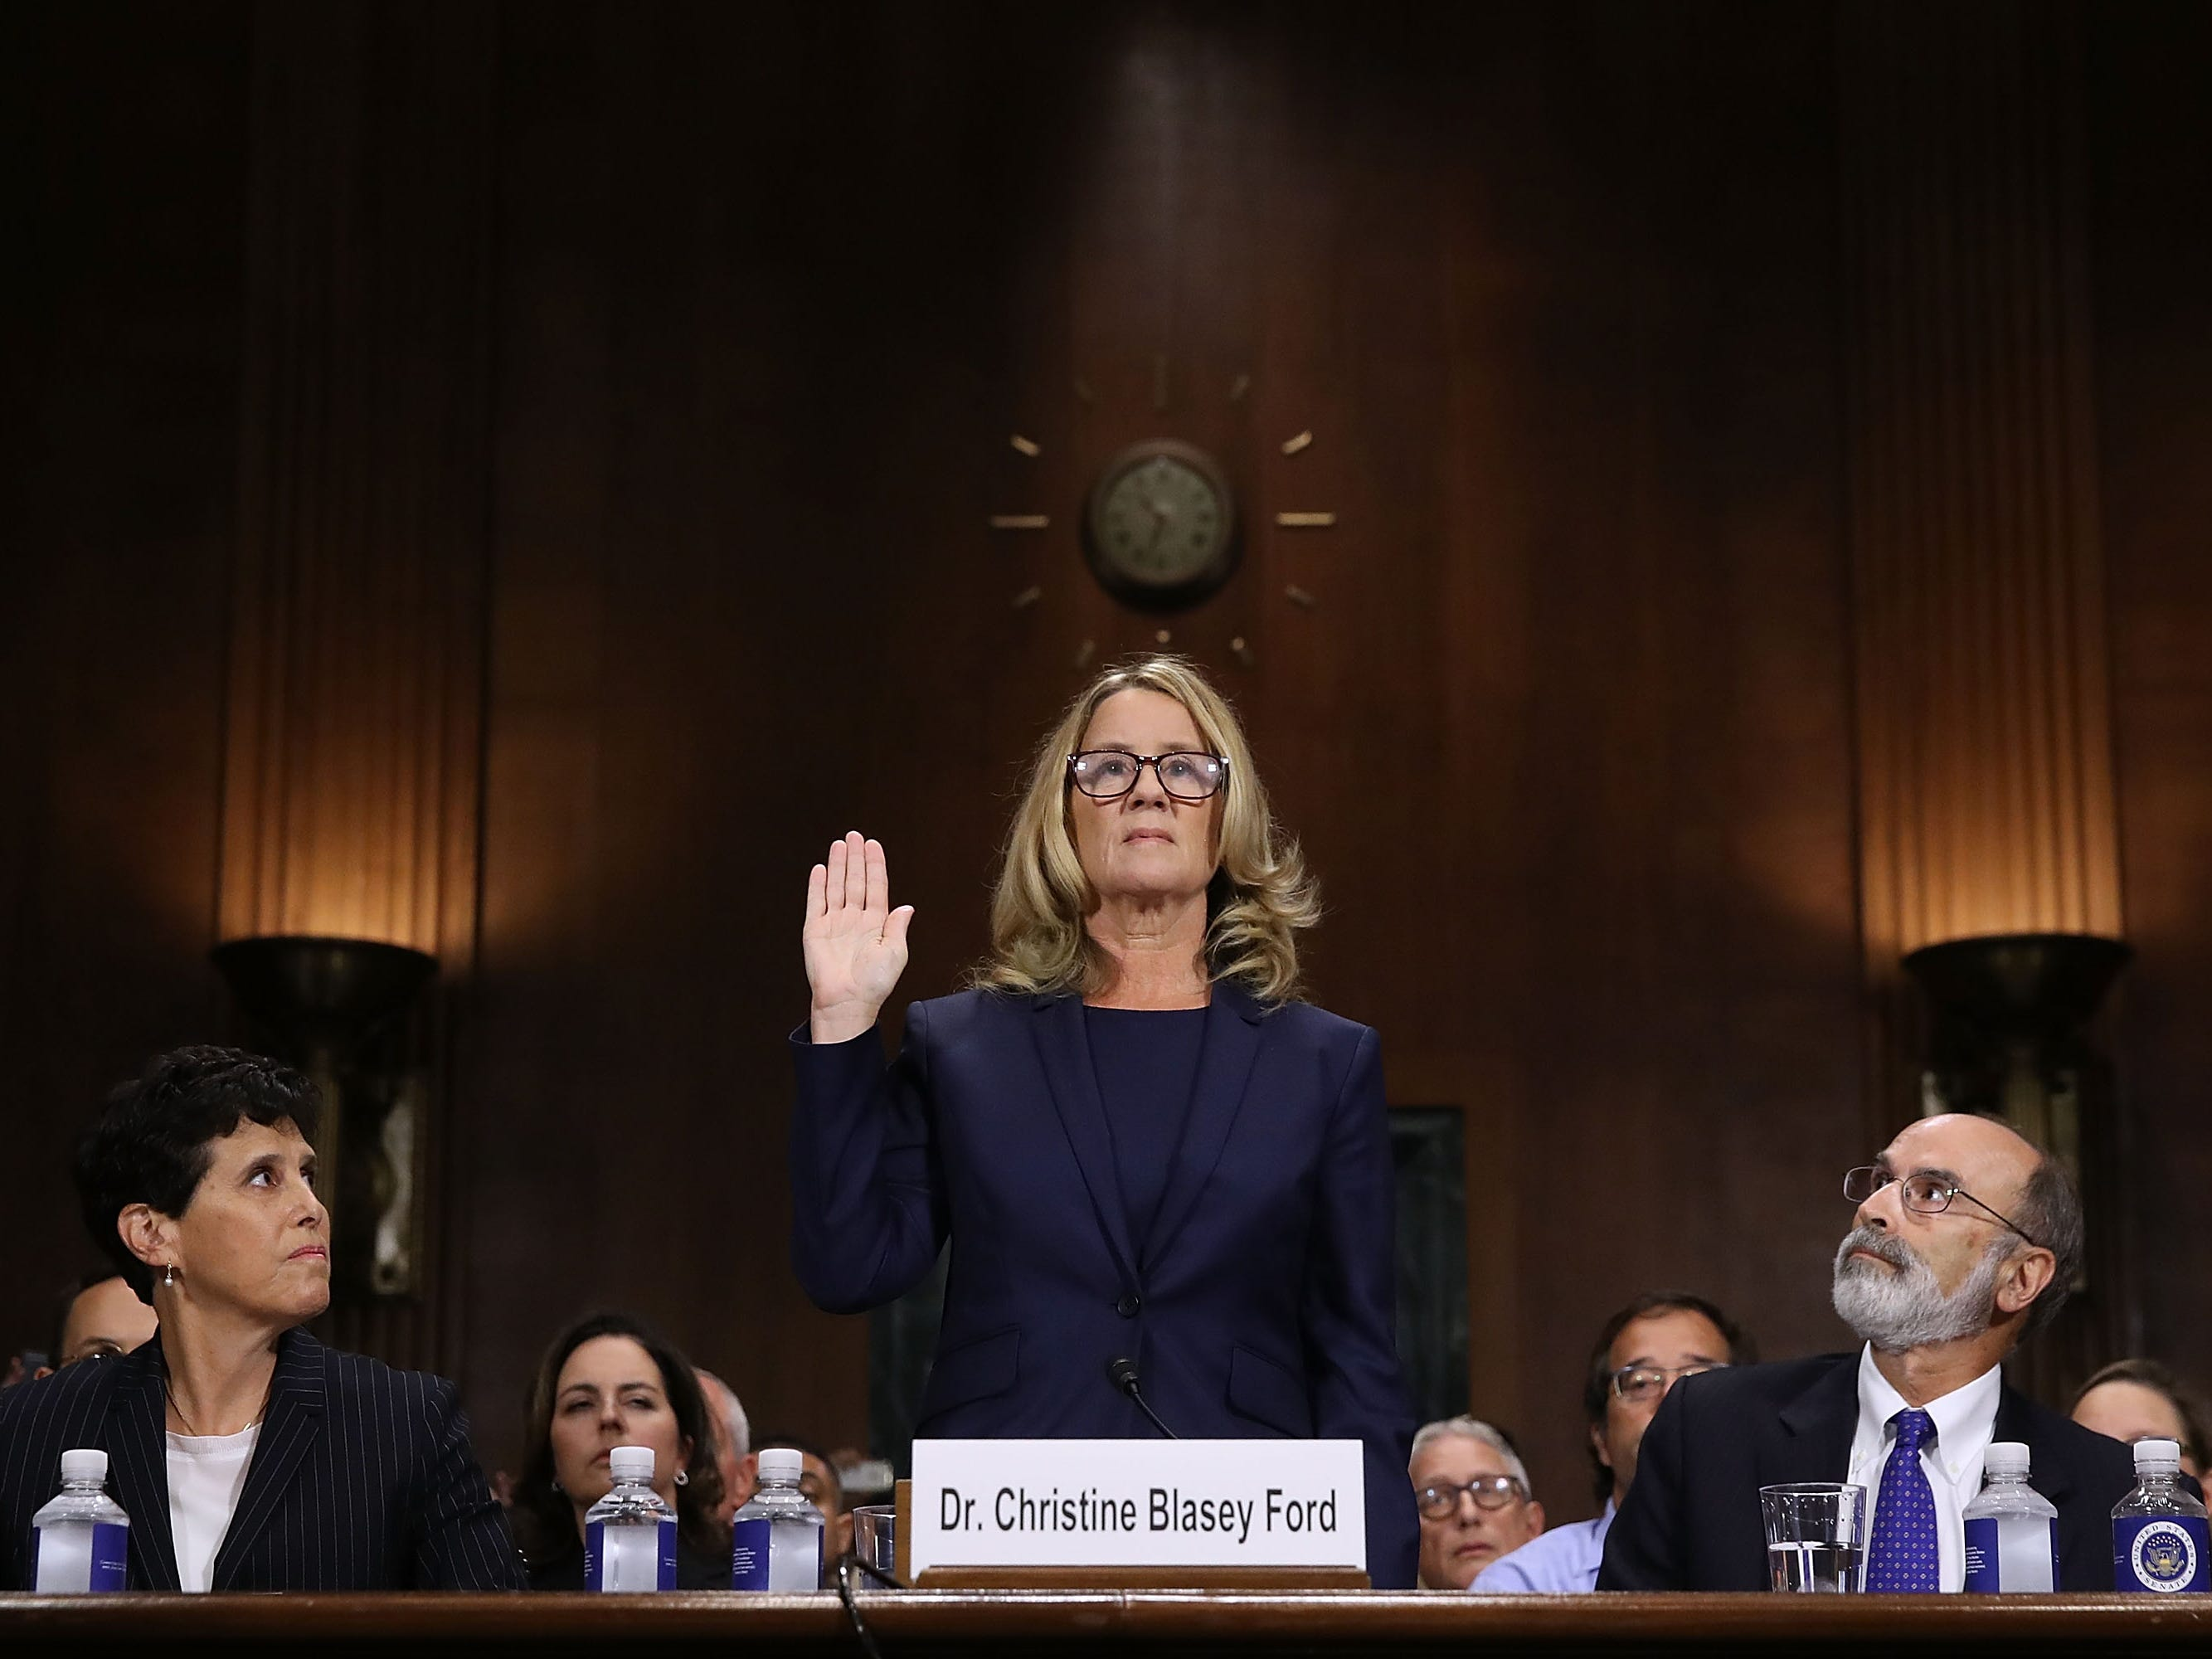 WASHINGTON, DC - SEPTEMBER 27:  Christine Blasey Ford (C) is sworn in before testifying the Senate Judiciary Committee with her attorneys Debra Katz (L) and Michael Bromwich (R) in the Dirksen Senate Office Building on Capitol Hill September 27, 2018 in Washington, DC. A professor at Palo Alto University and a research psychologist at the Stanford University School of Medicine, Ford has accused Supreme Court nominee Judge Brett Kavanaugh of sexually assaulting her during a party in 1982 when they were high school students in suburban Maryland. In prepared remarks, Ford said, ÒI donÕt have all the answers, and I donÕt remember as much as I would like to. But the details about that night that bring me here today are ones I will never forget. They have been seared into my memory and have haunted me episodically as an adult.Ó  (Photo by Win McNamee/Getty Images) ORG XMIT: 775234142 ORIG FILE ID: 1041671342